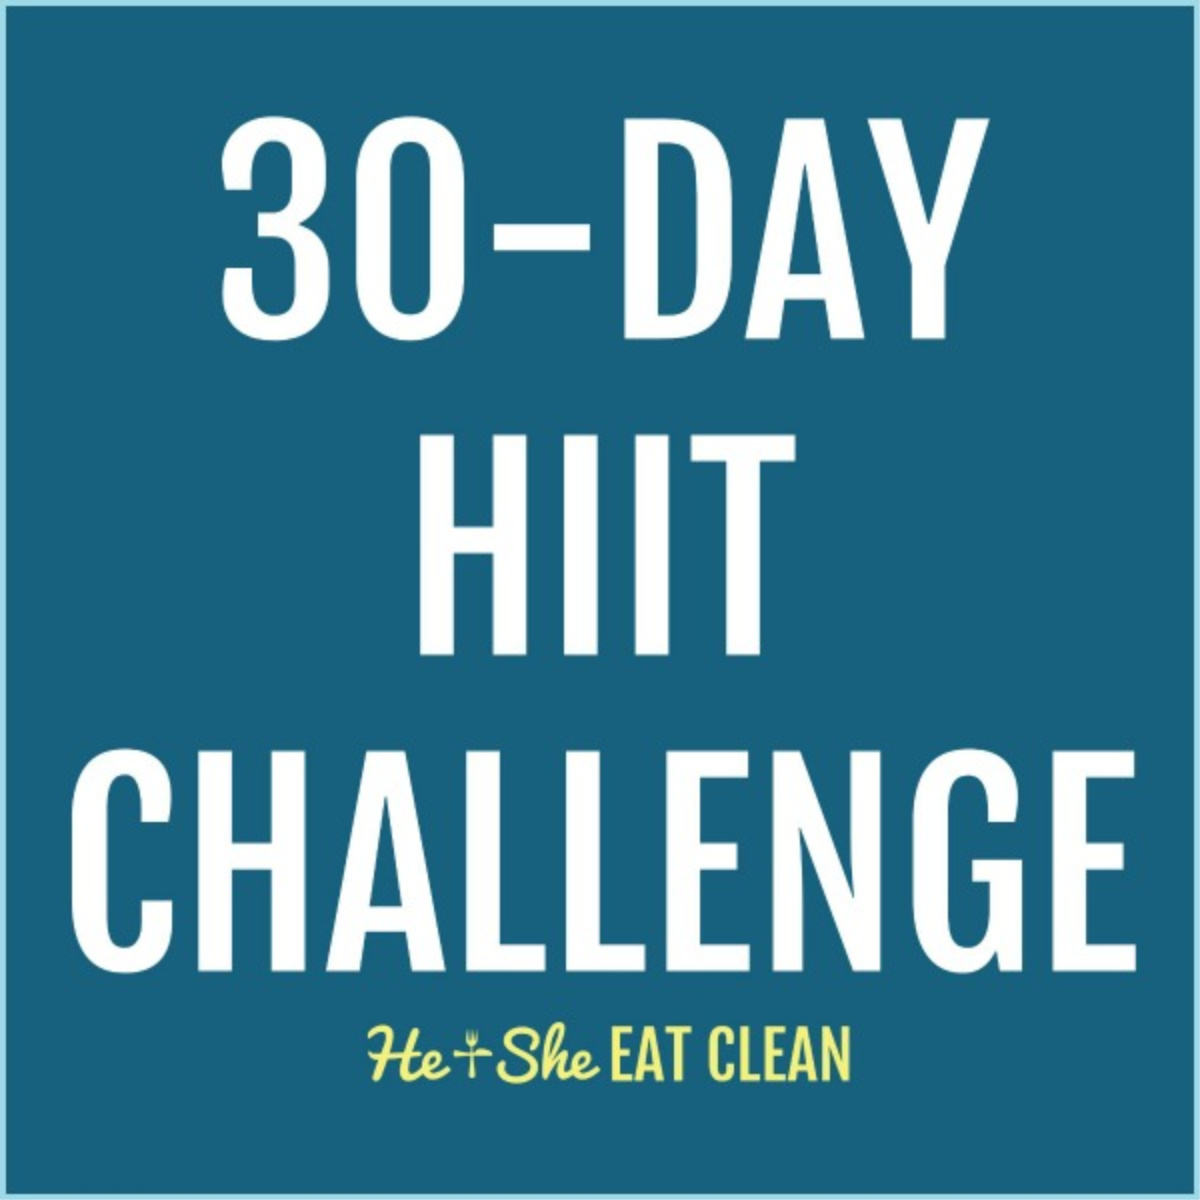 blue background with white text reads 30-day HIIT challenge